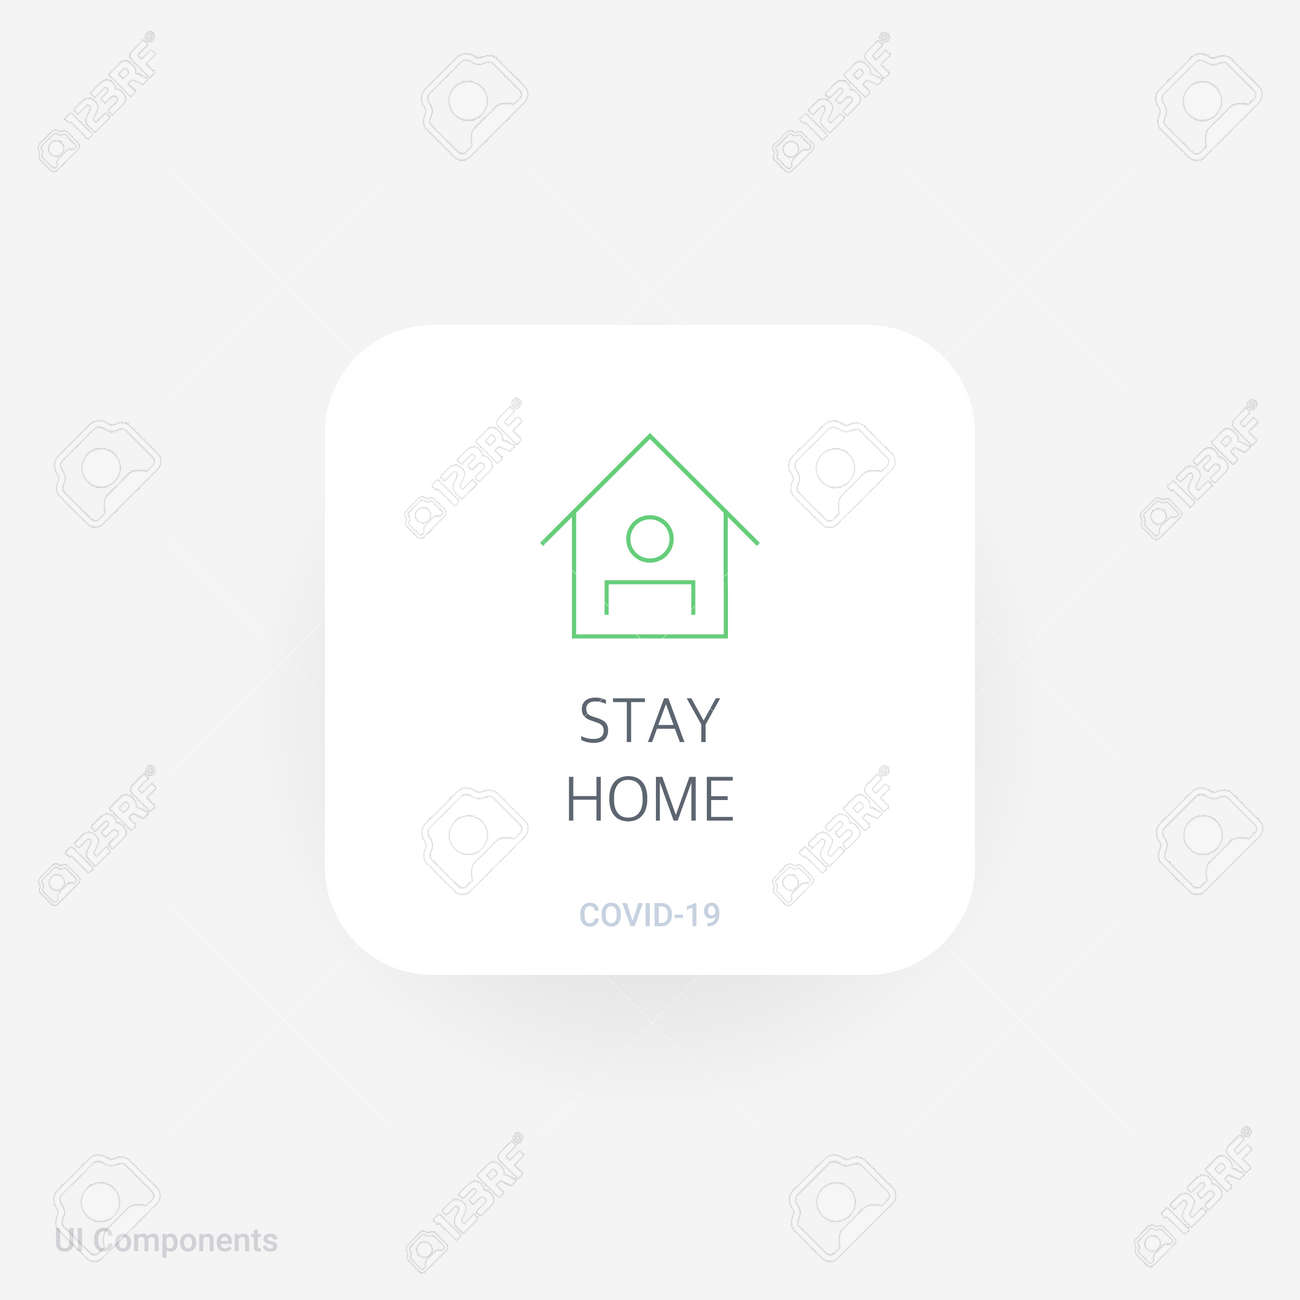 Stay Home Refined Covid 19 Medical Function And Information Royalty Free Cliparts Vectors And Stock Illustration Image 159420318